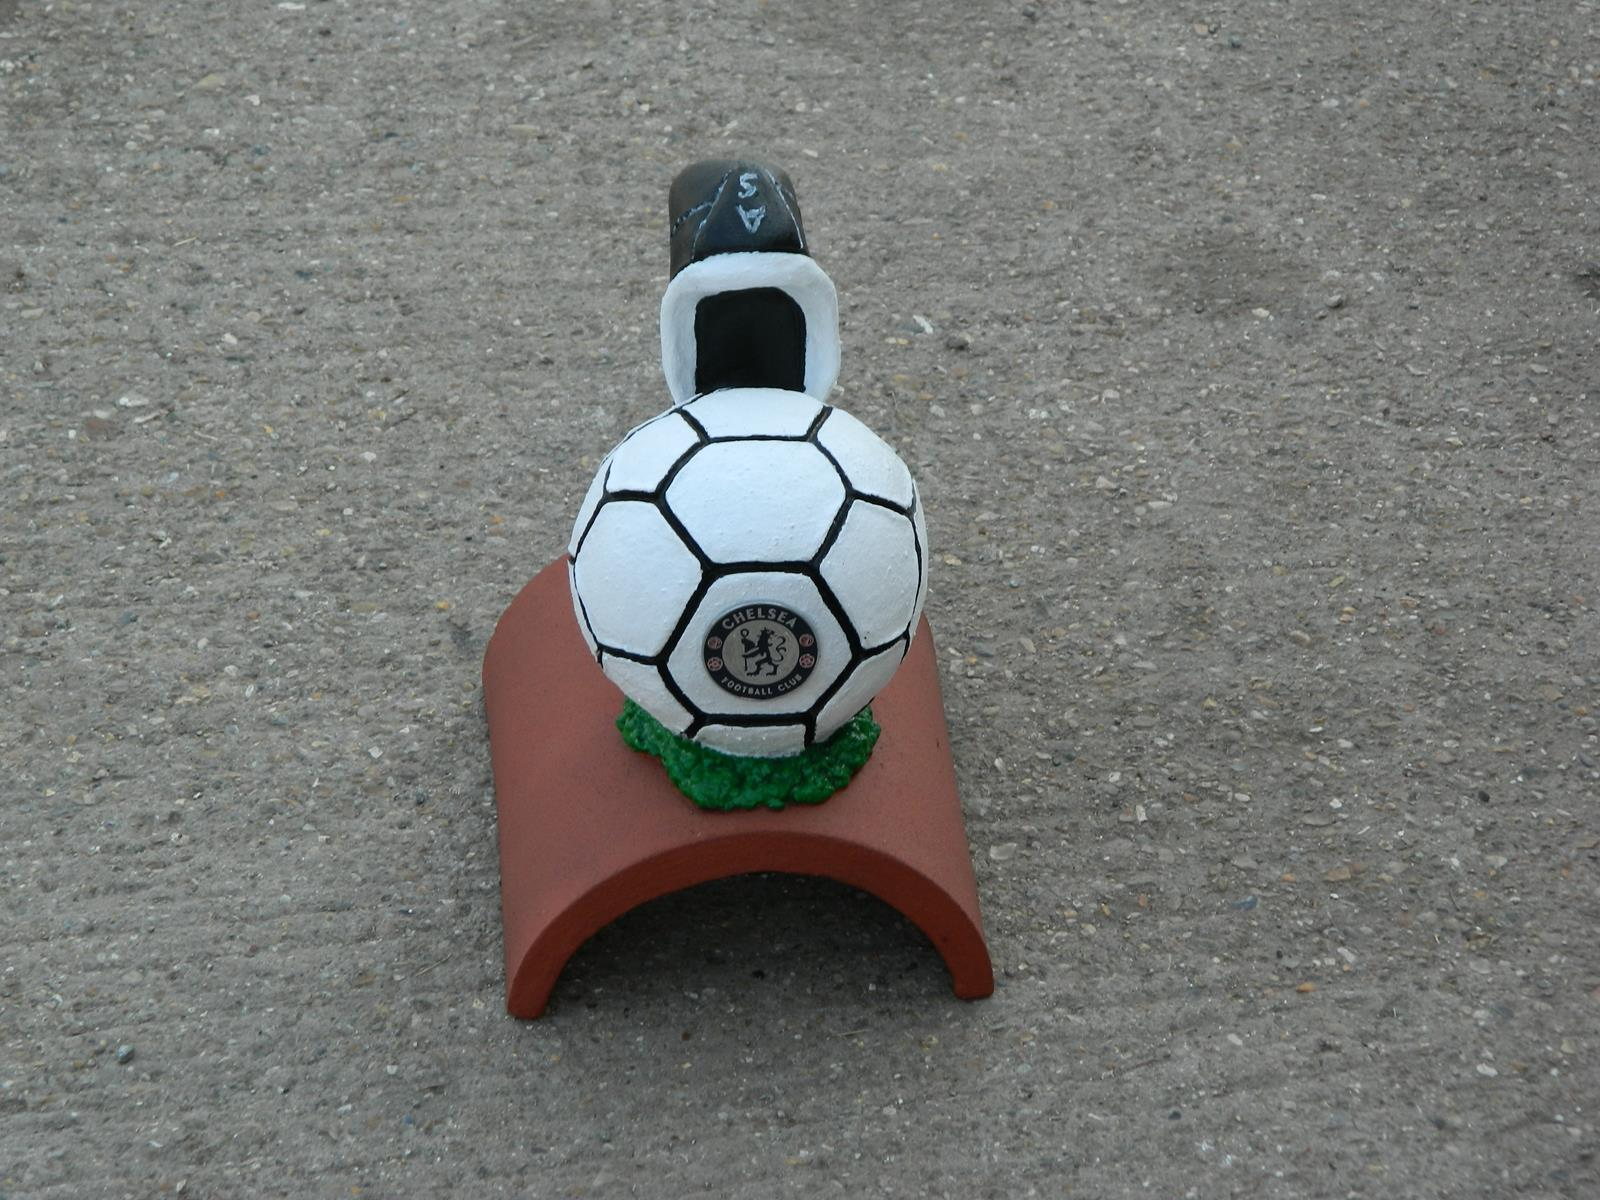 Chelsea handpainted football finial